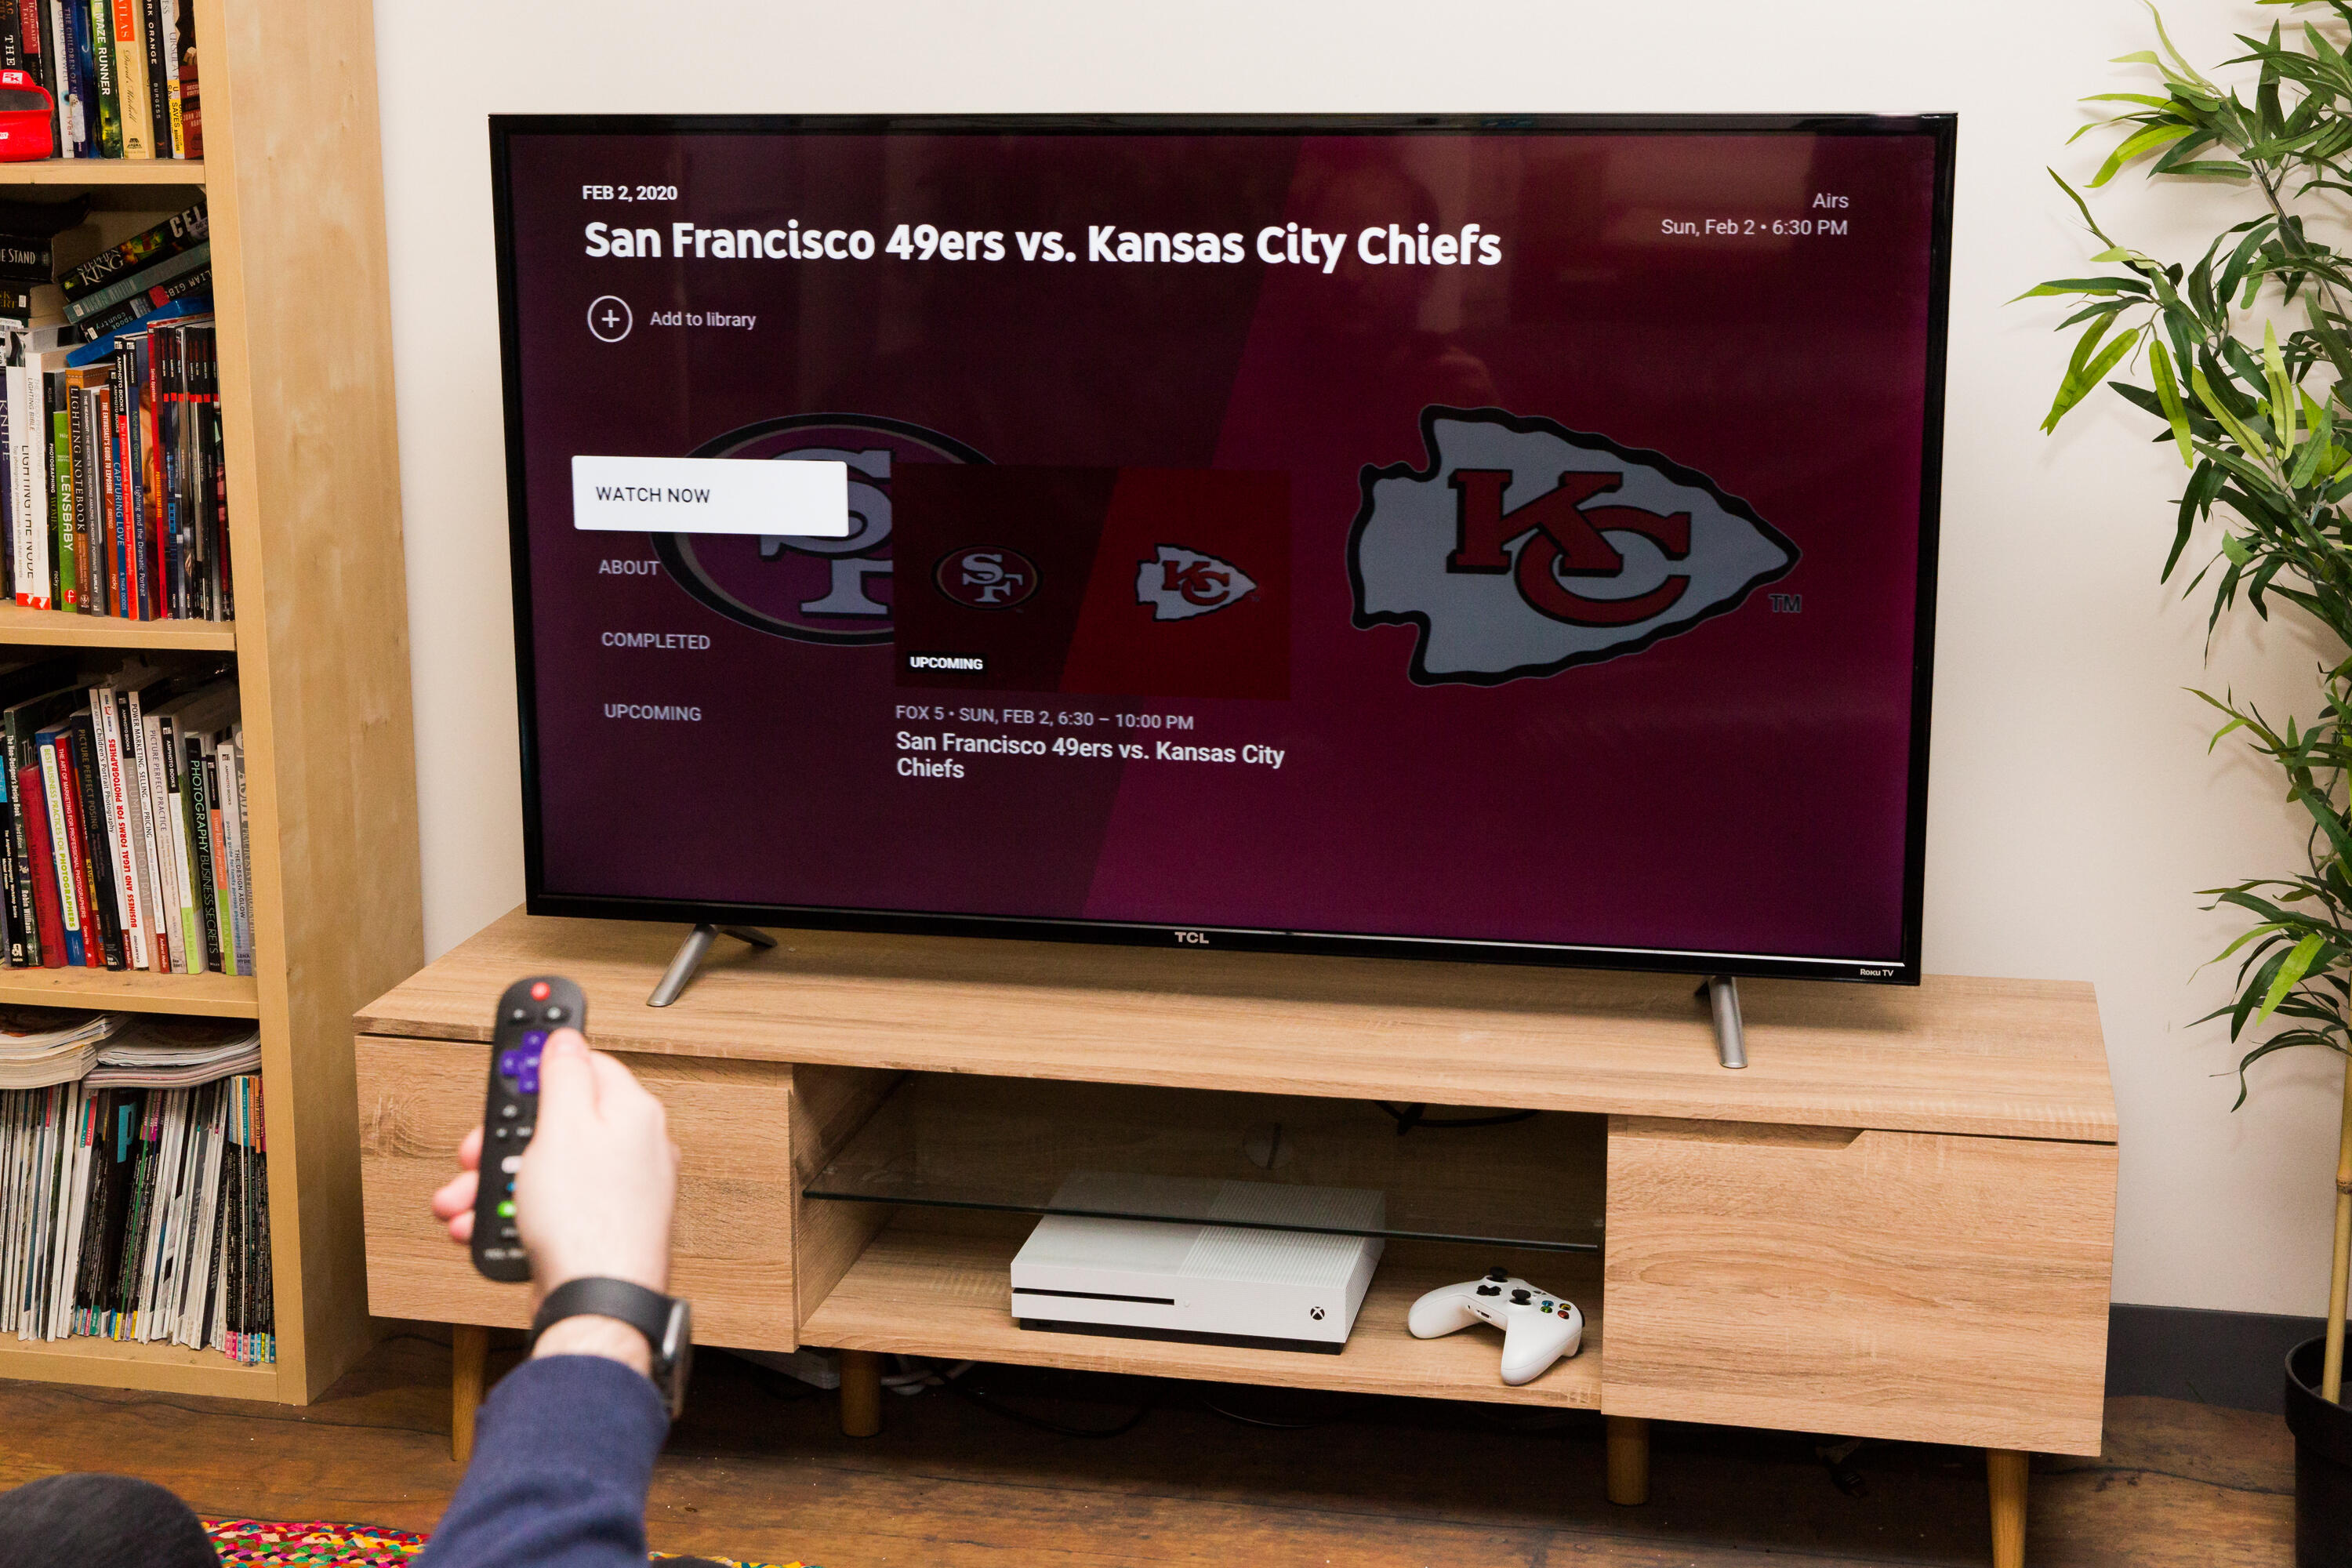 01-superbowl-2020-streaming-latency